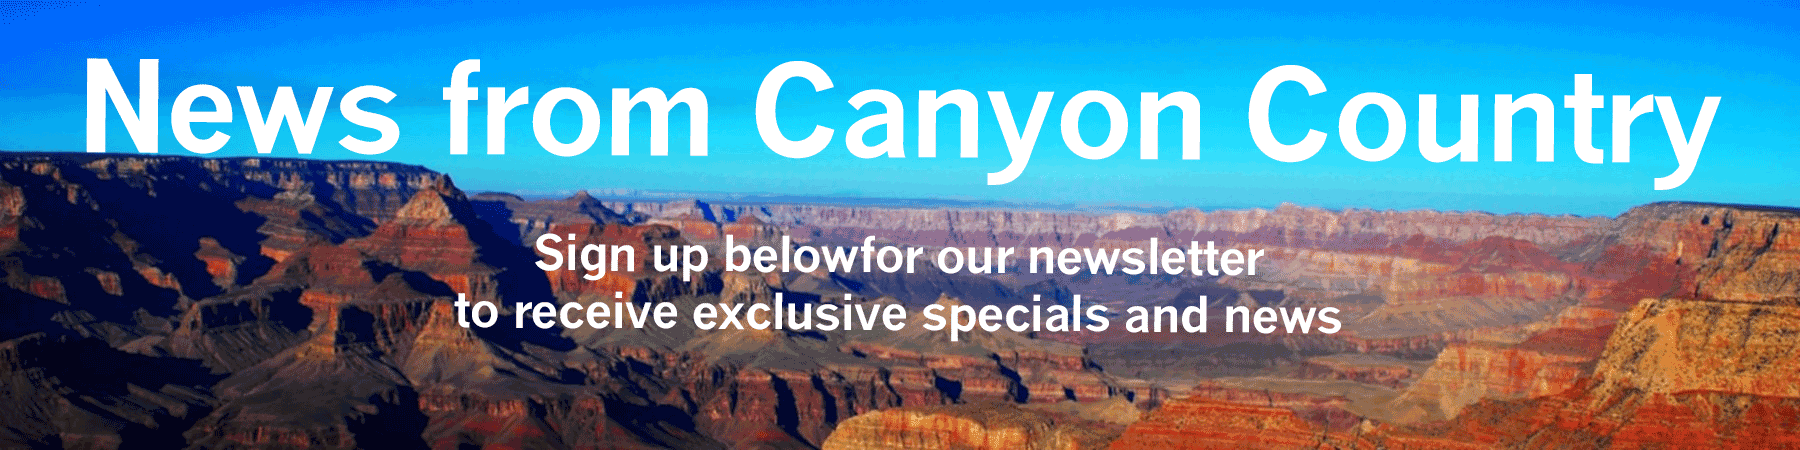 sign up for newsletter from Canyon Country